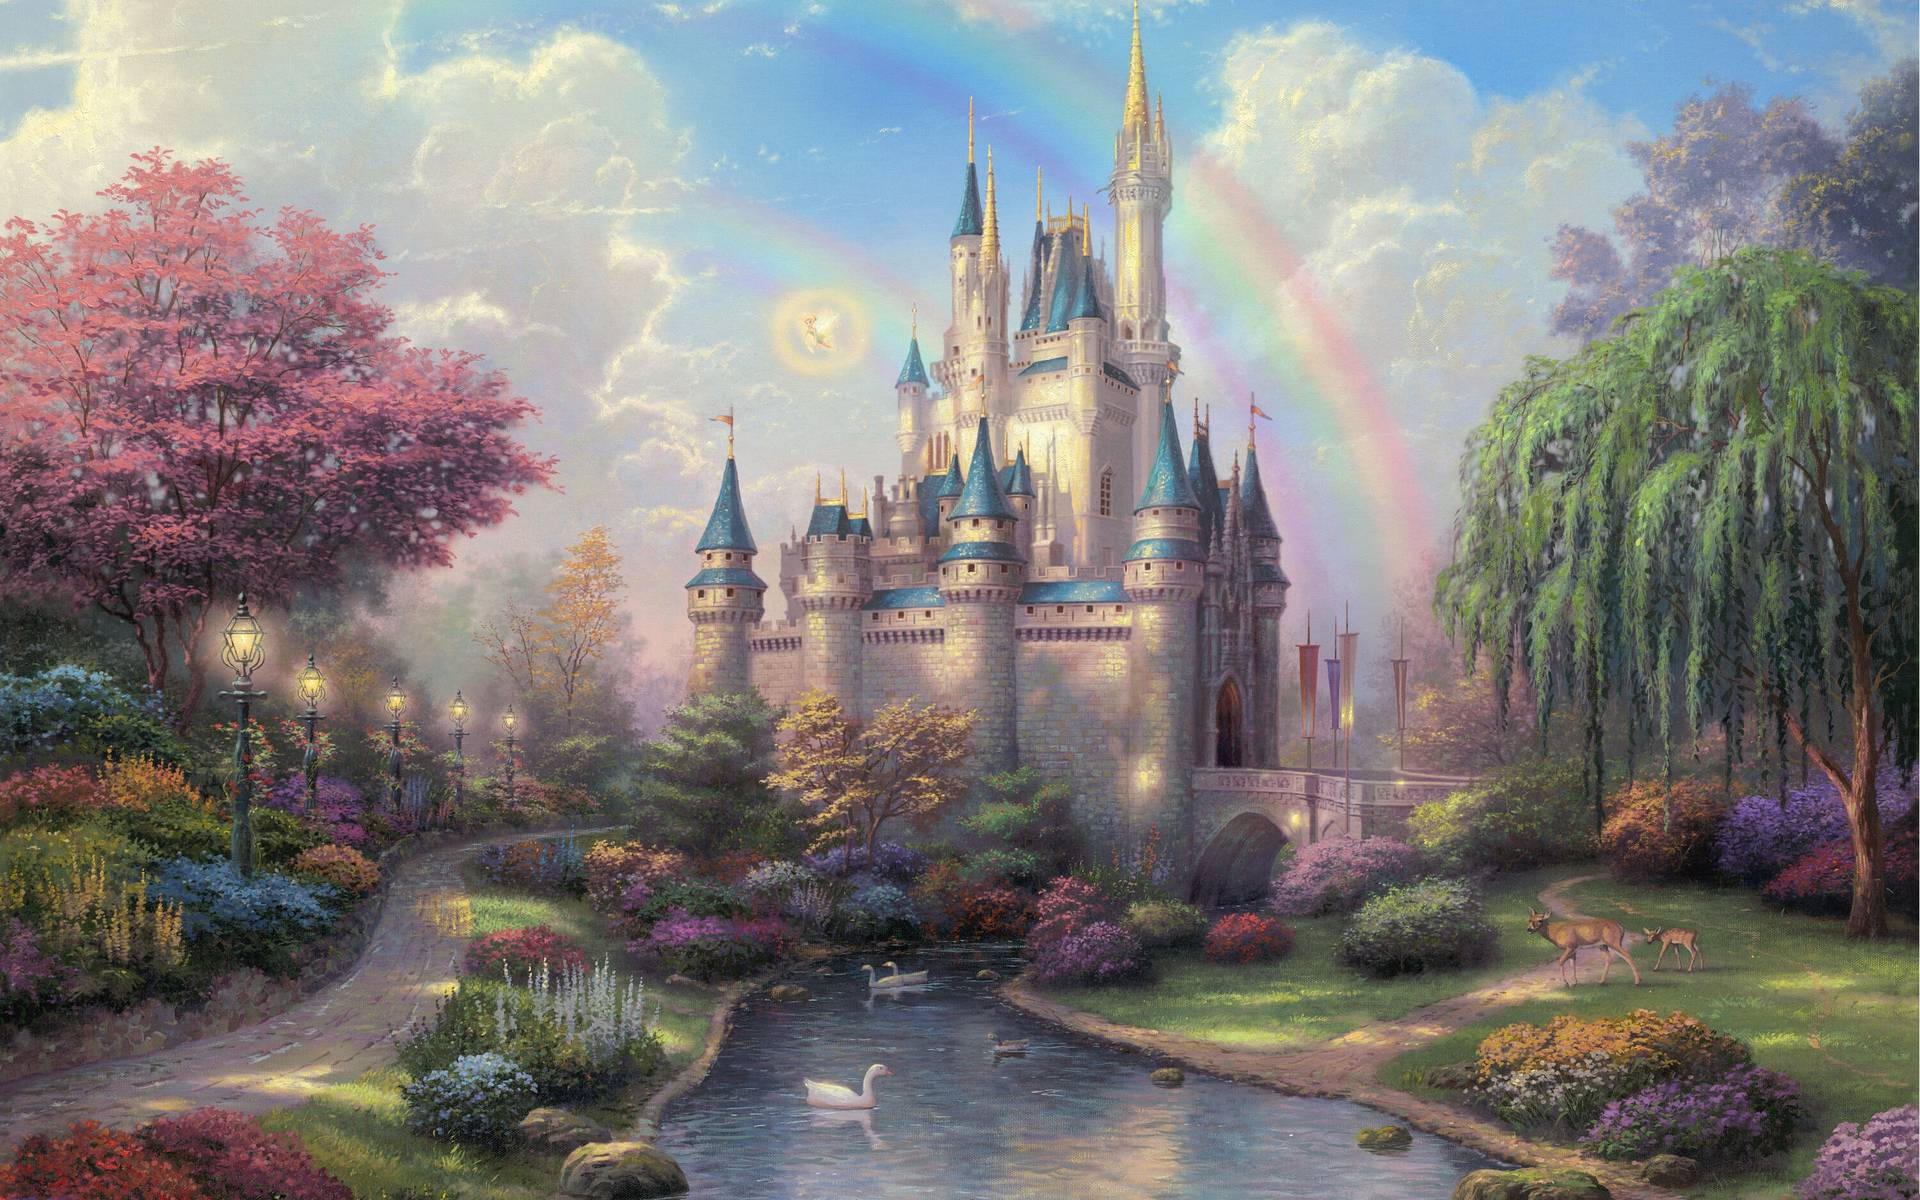 Thomas Kinkade Spirit Of Christmas wallpapers 233107